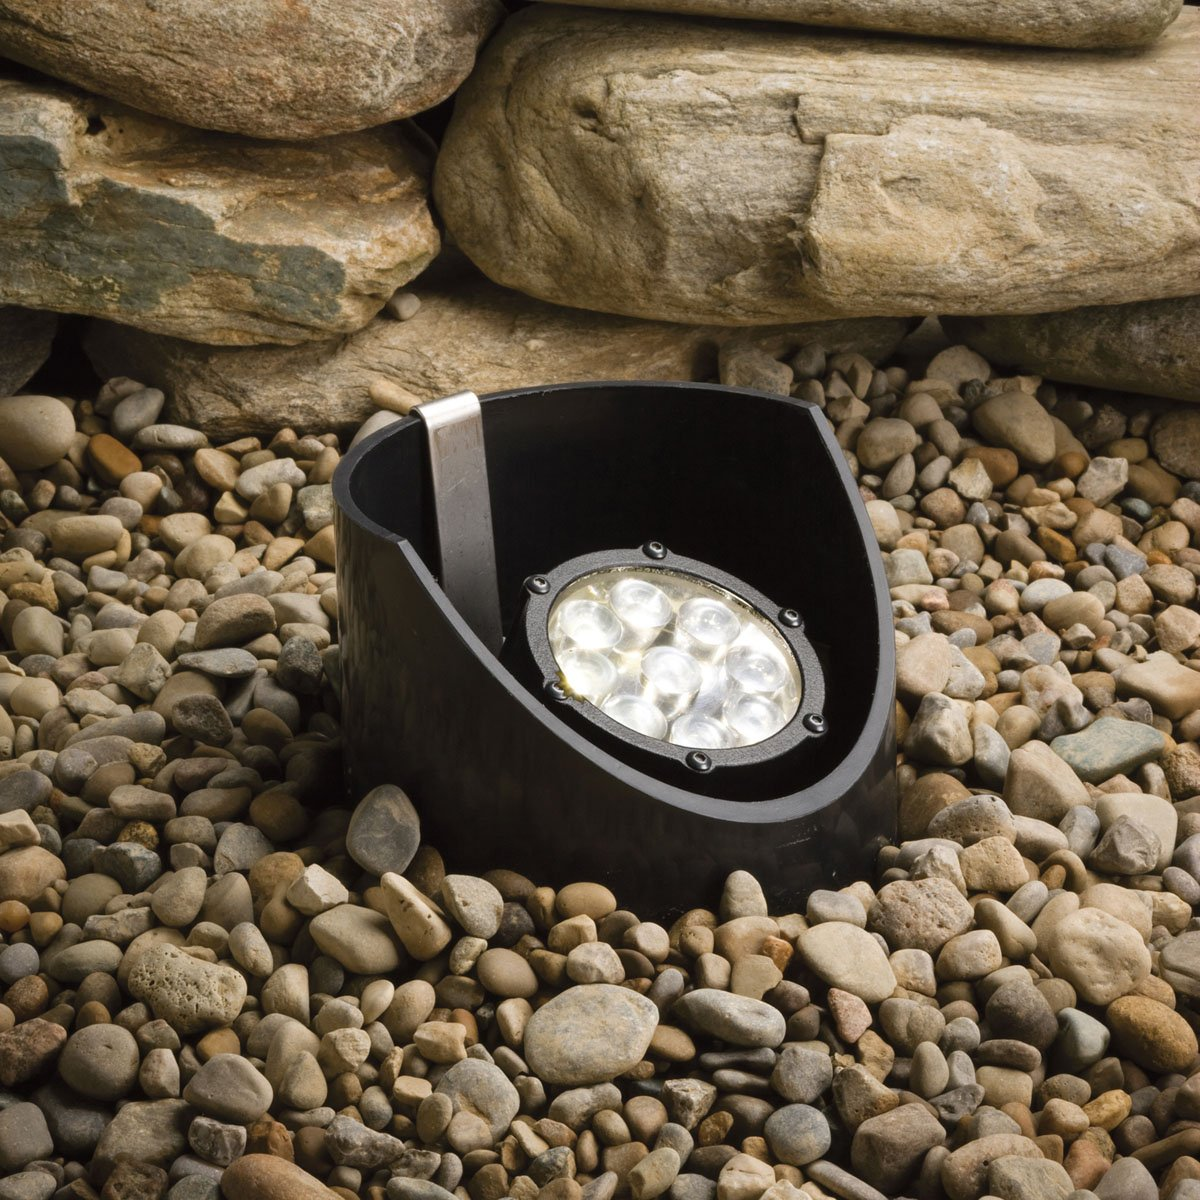 Kichler Lighting 15758BKT LED Well Light 9-Light Low Voltage 60 Degree Wide Spread Light, Textured Black with Clear Tempered Glass Lens by Kichler Lighting